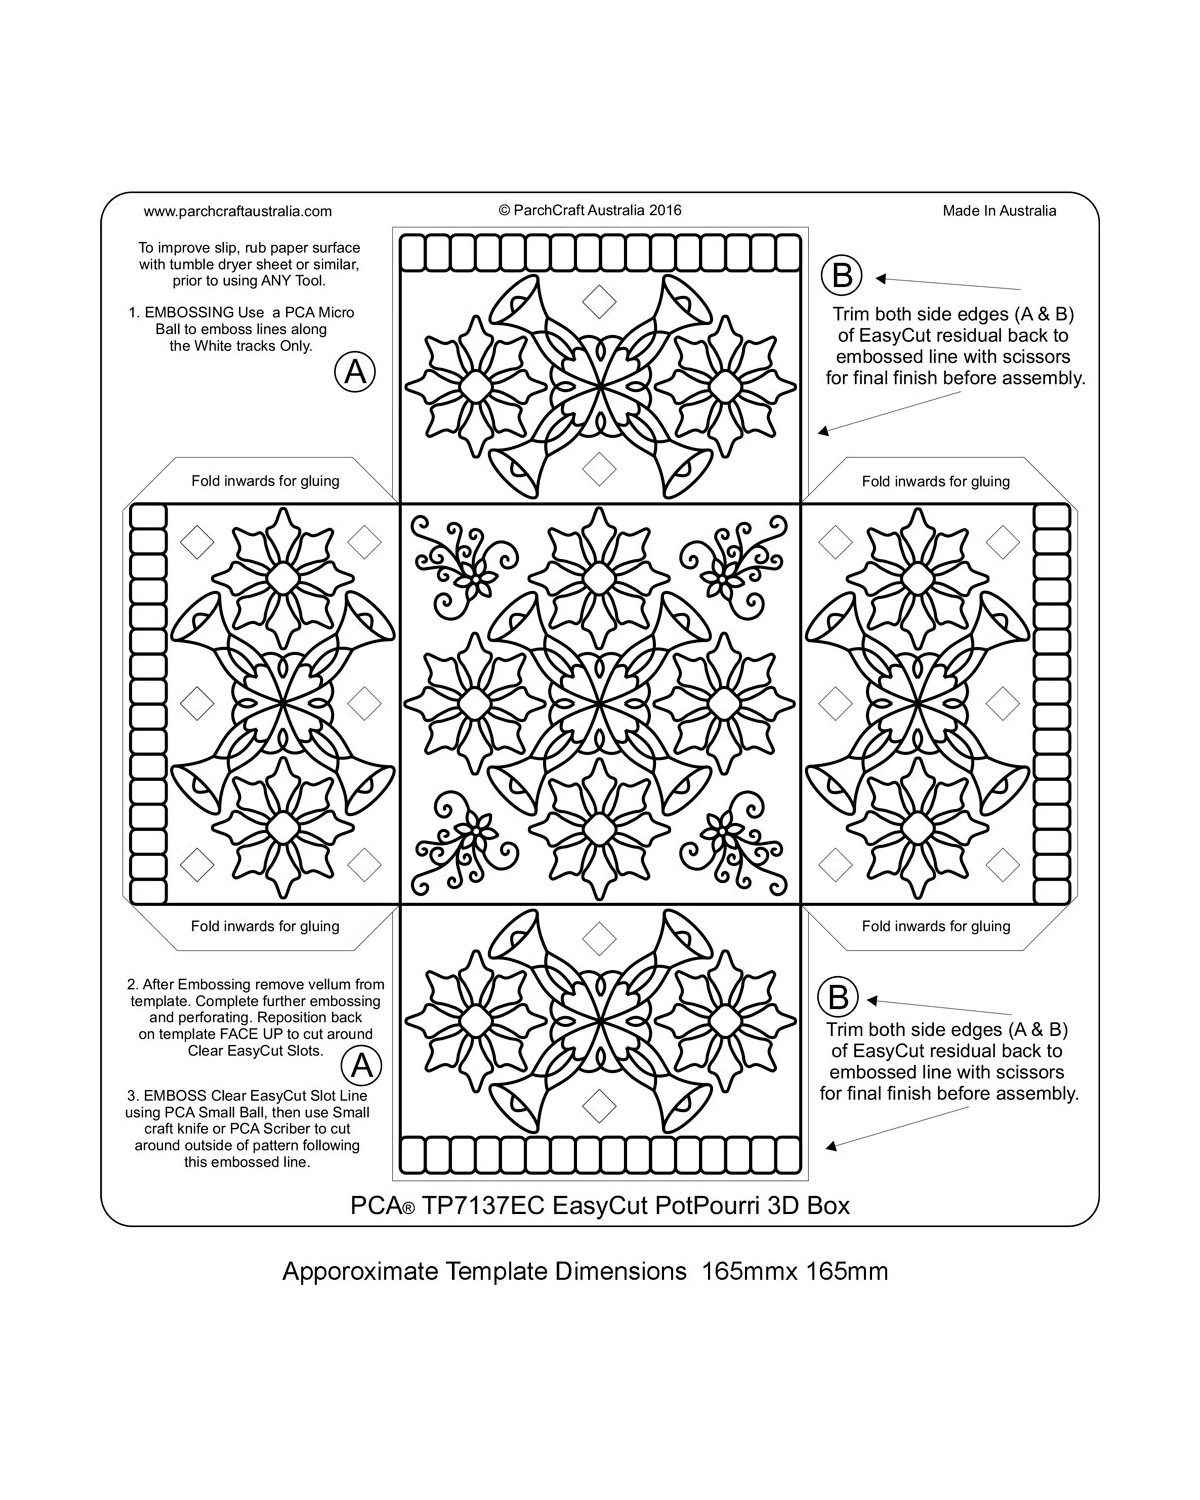 Easy Cut Templates Archives - Page 2 of 2 - Parchment Worldwide